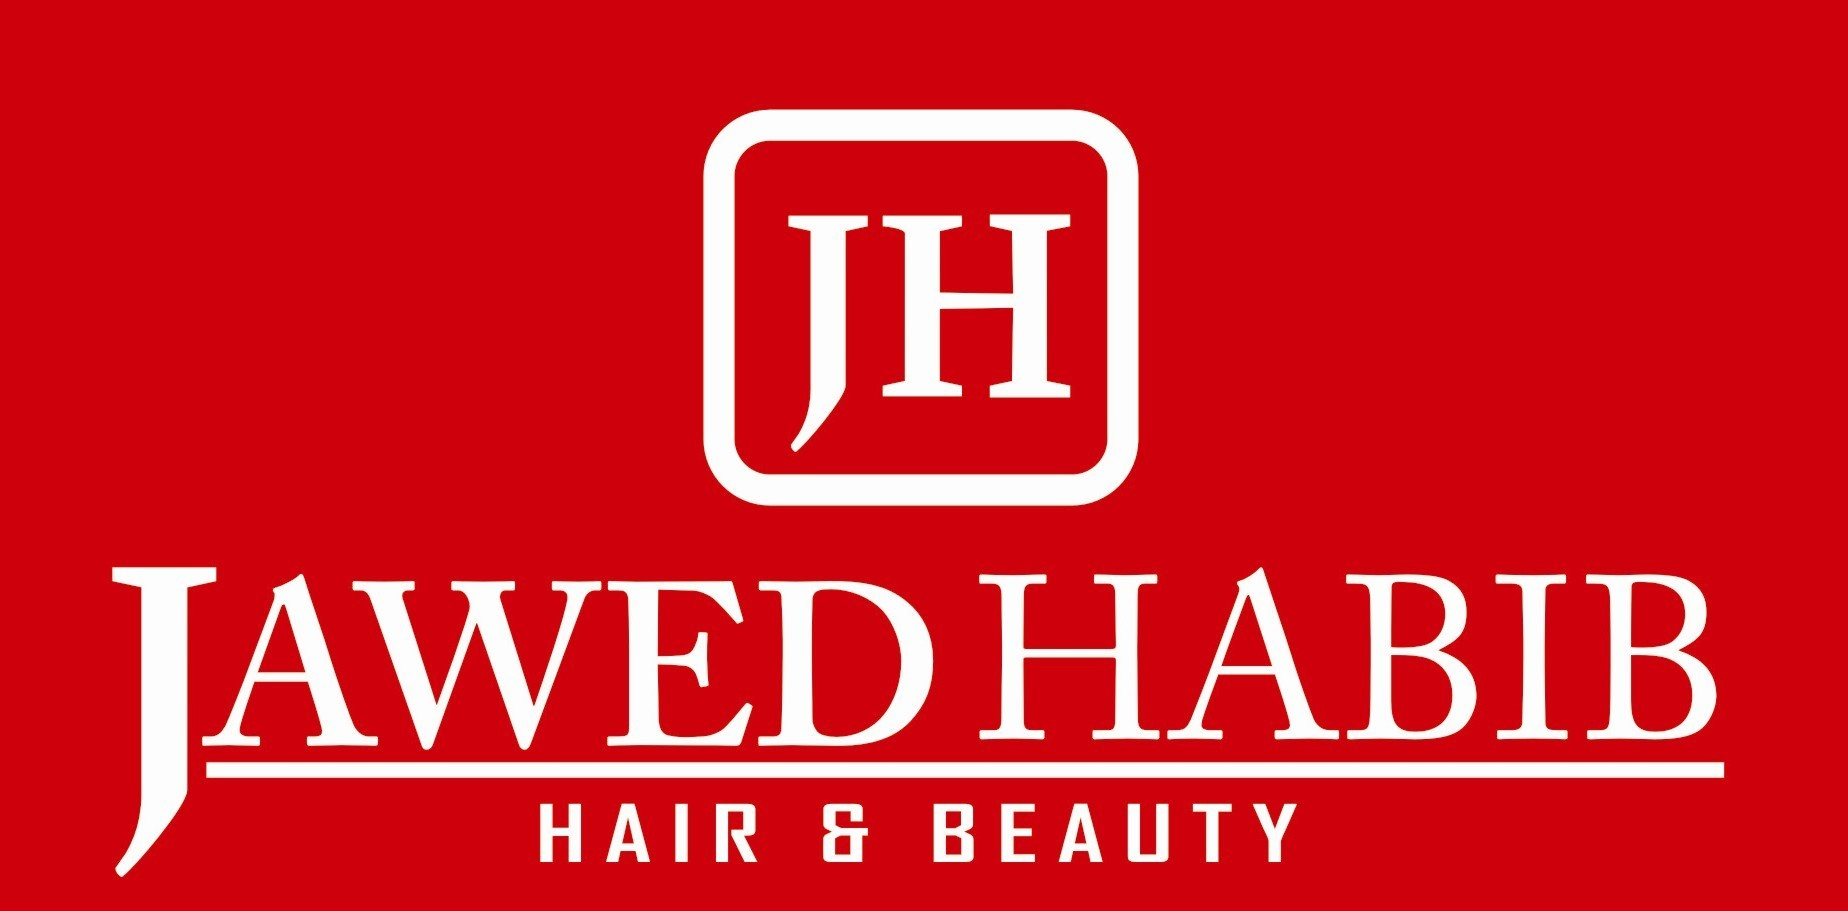 Jawed Habib Hair & Beauty Salons - RNT Marg - Indore Image